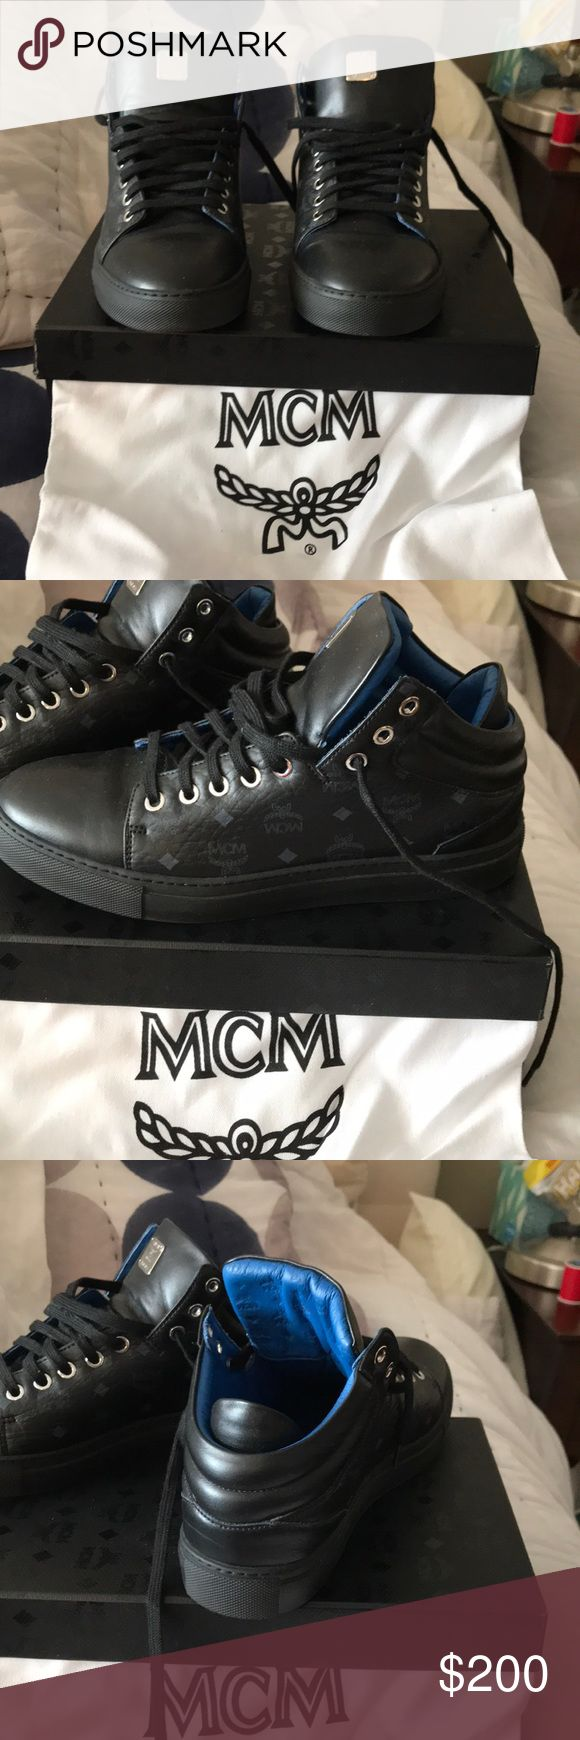 MCM sneakers black black MCM sneakers women's size 39 excellent condition MCM Shoes Sneakers